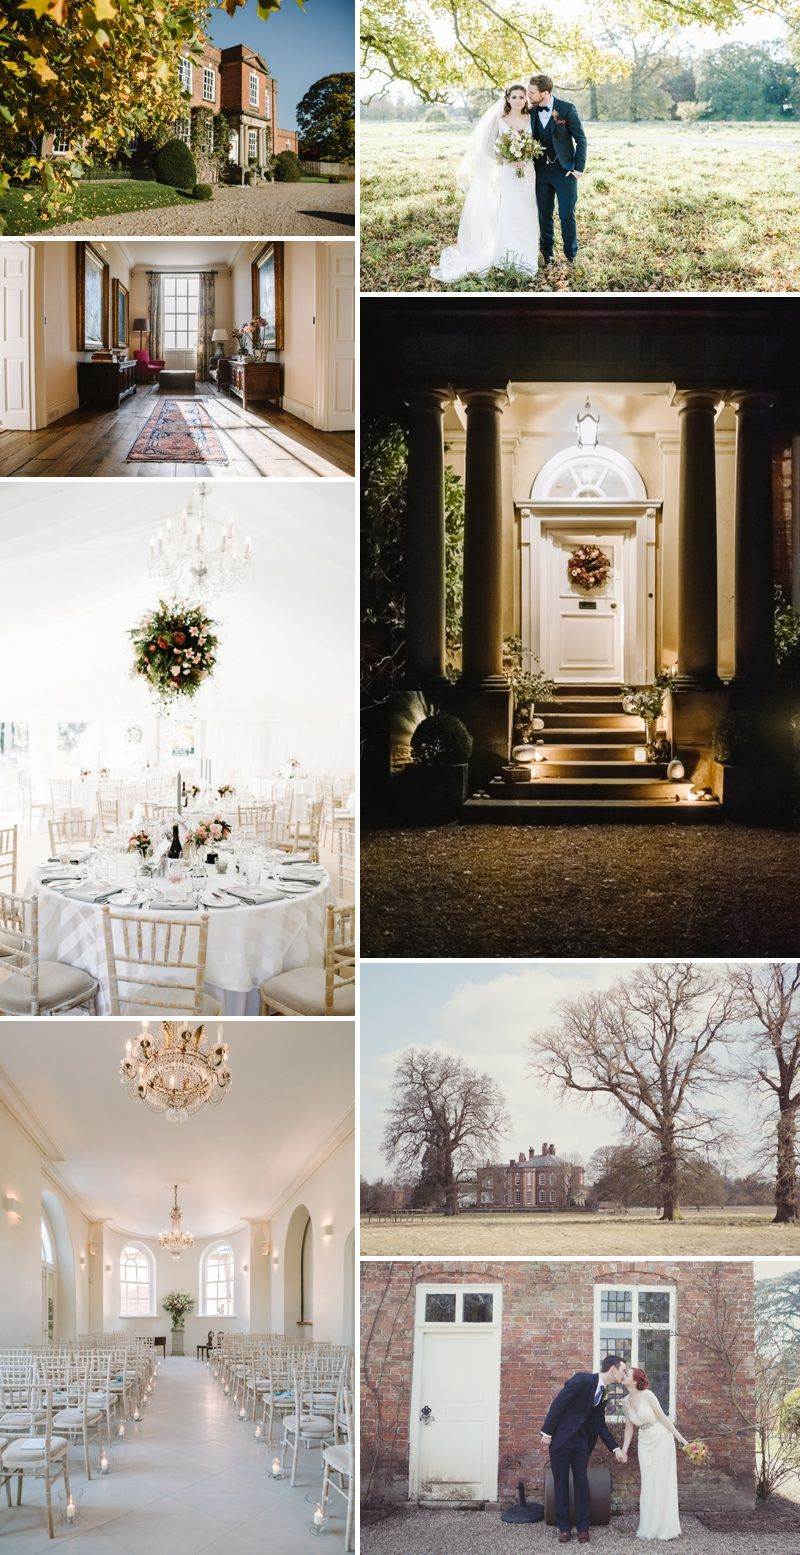 Iscoyd Park Luxury Wedding Venue Exclusive Use